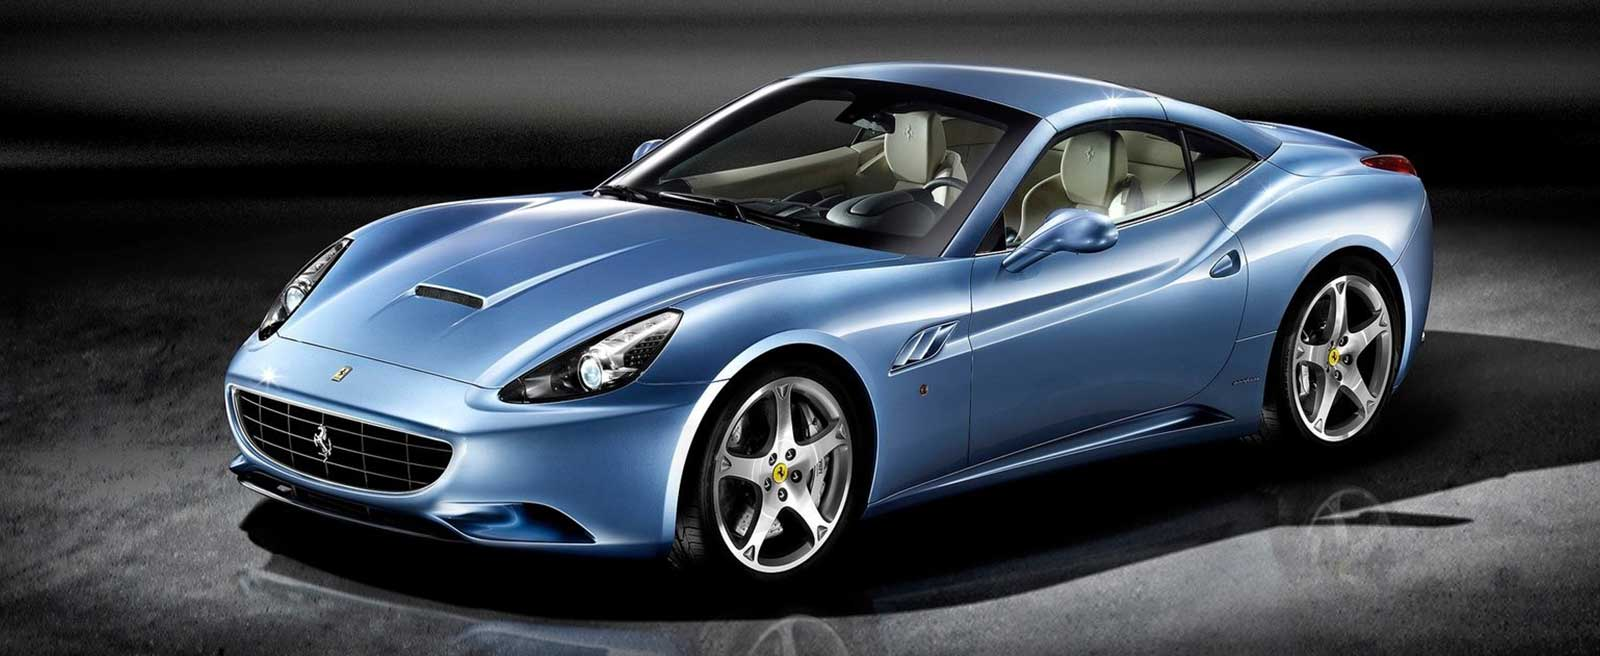 Badar Mansoor Trading | Ferrari sports car blue